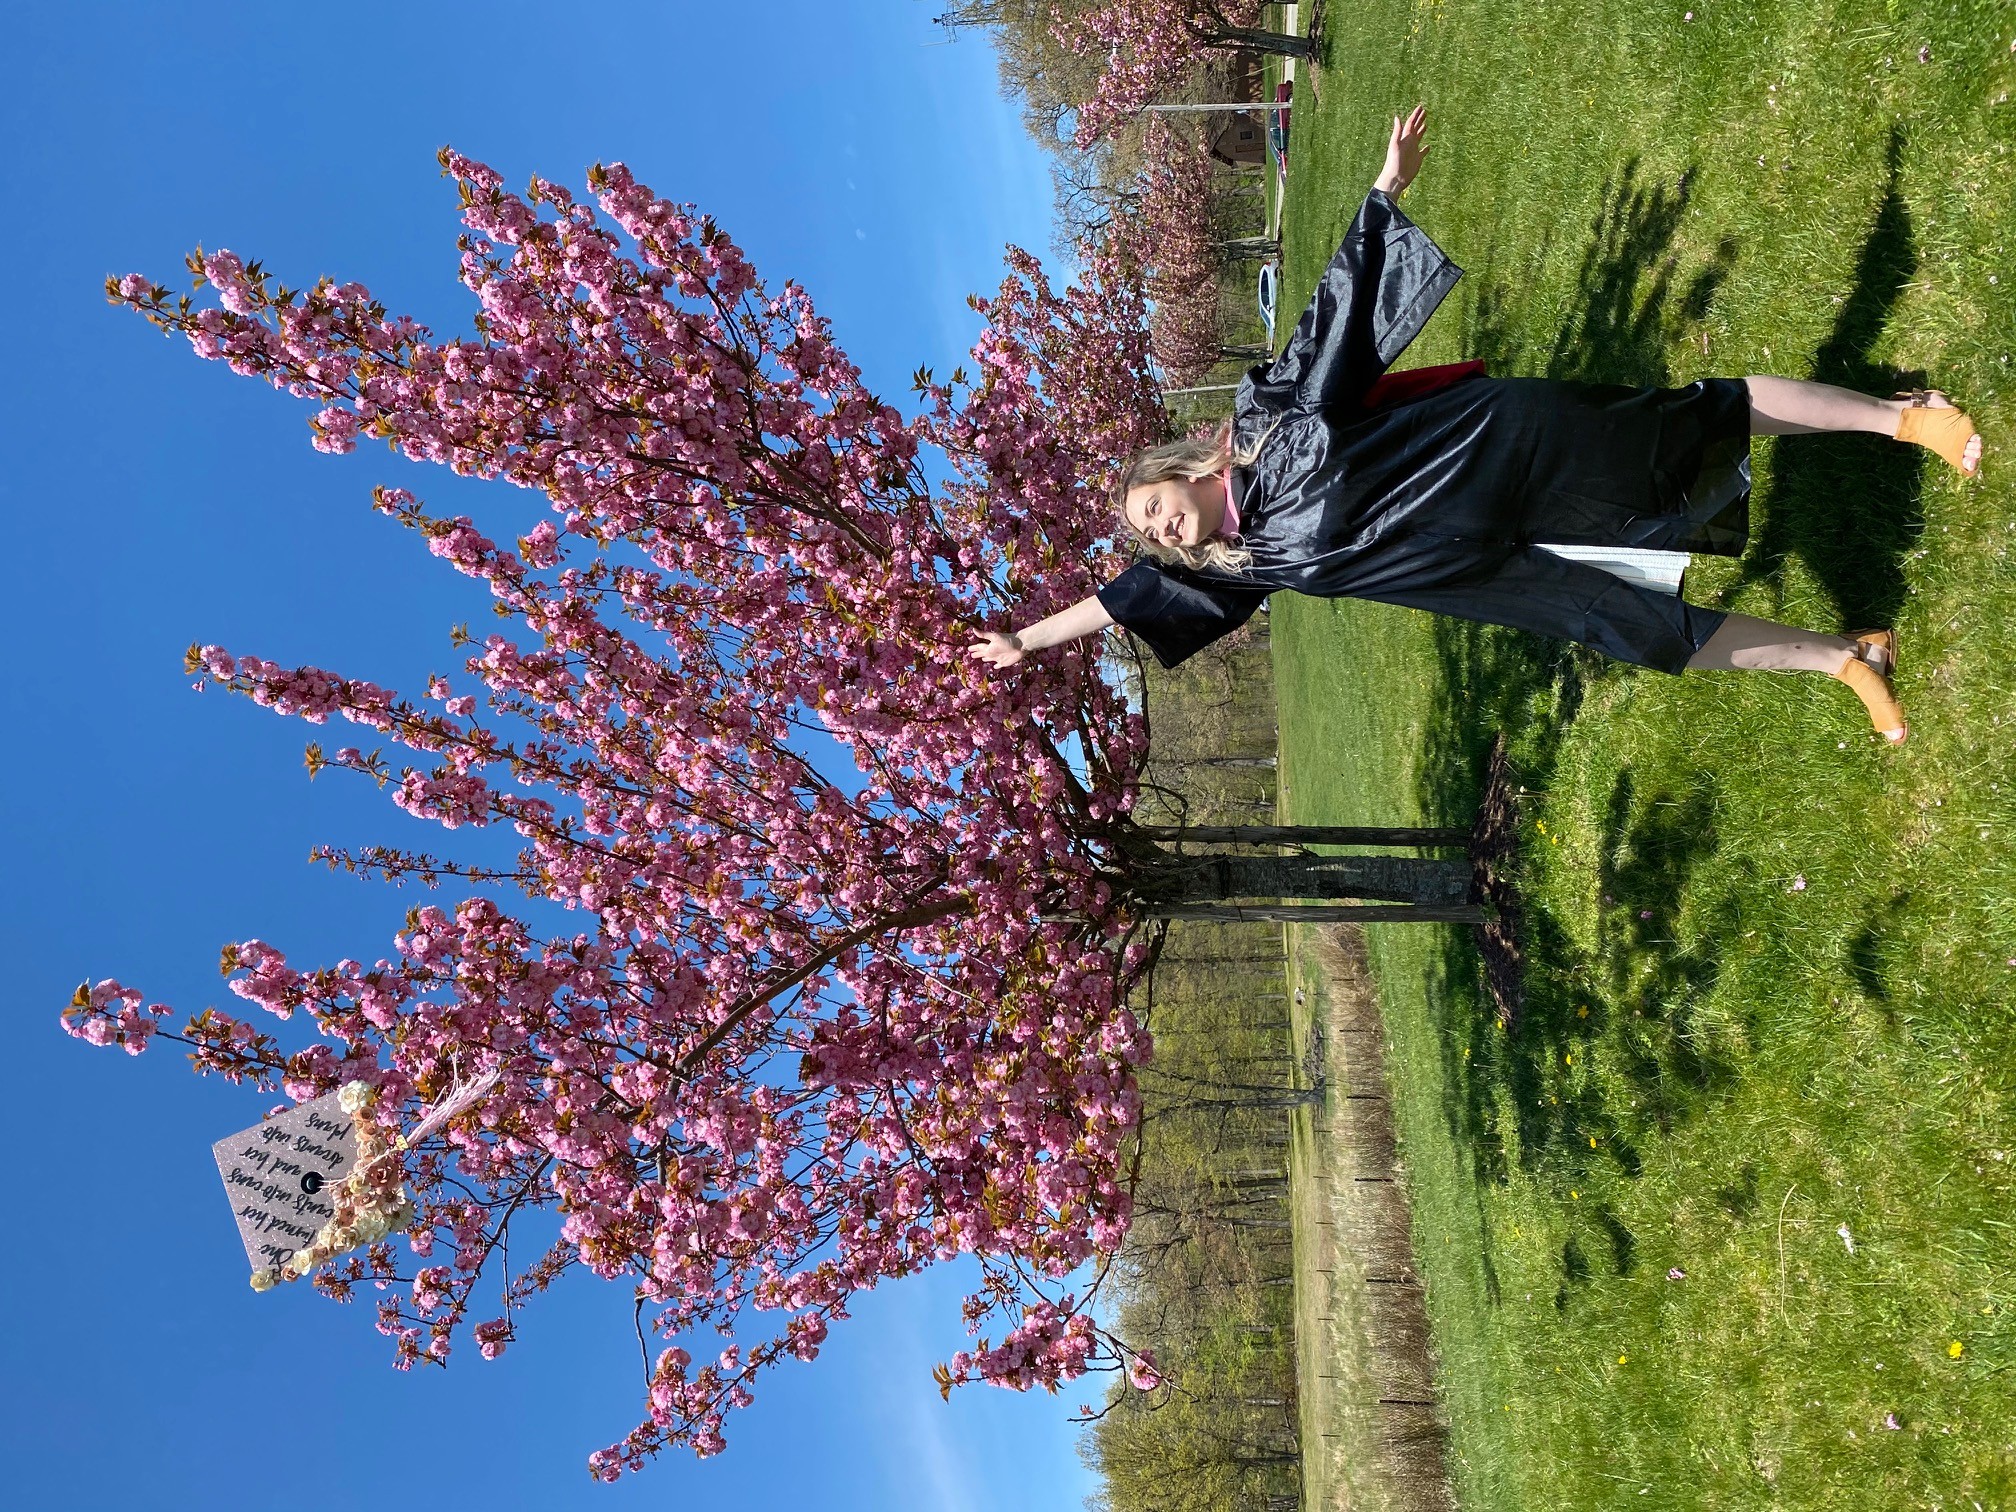 Berklee Online graduate Carrie Lane Pearlman throwing her cap in front of a blossoming tree.